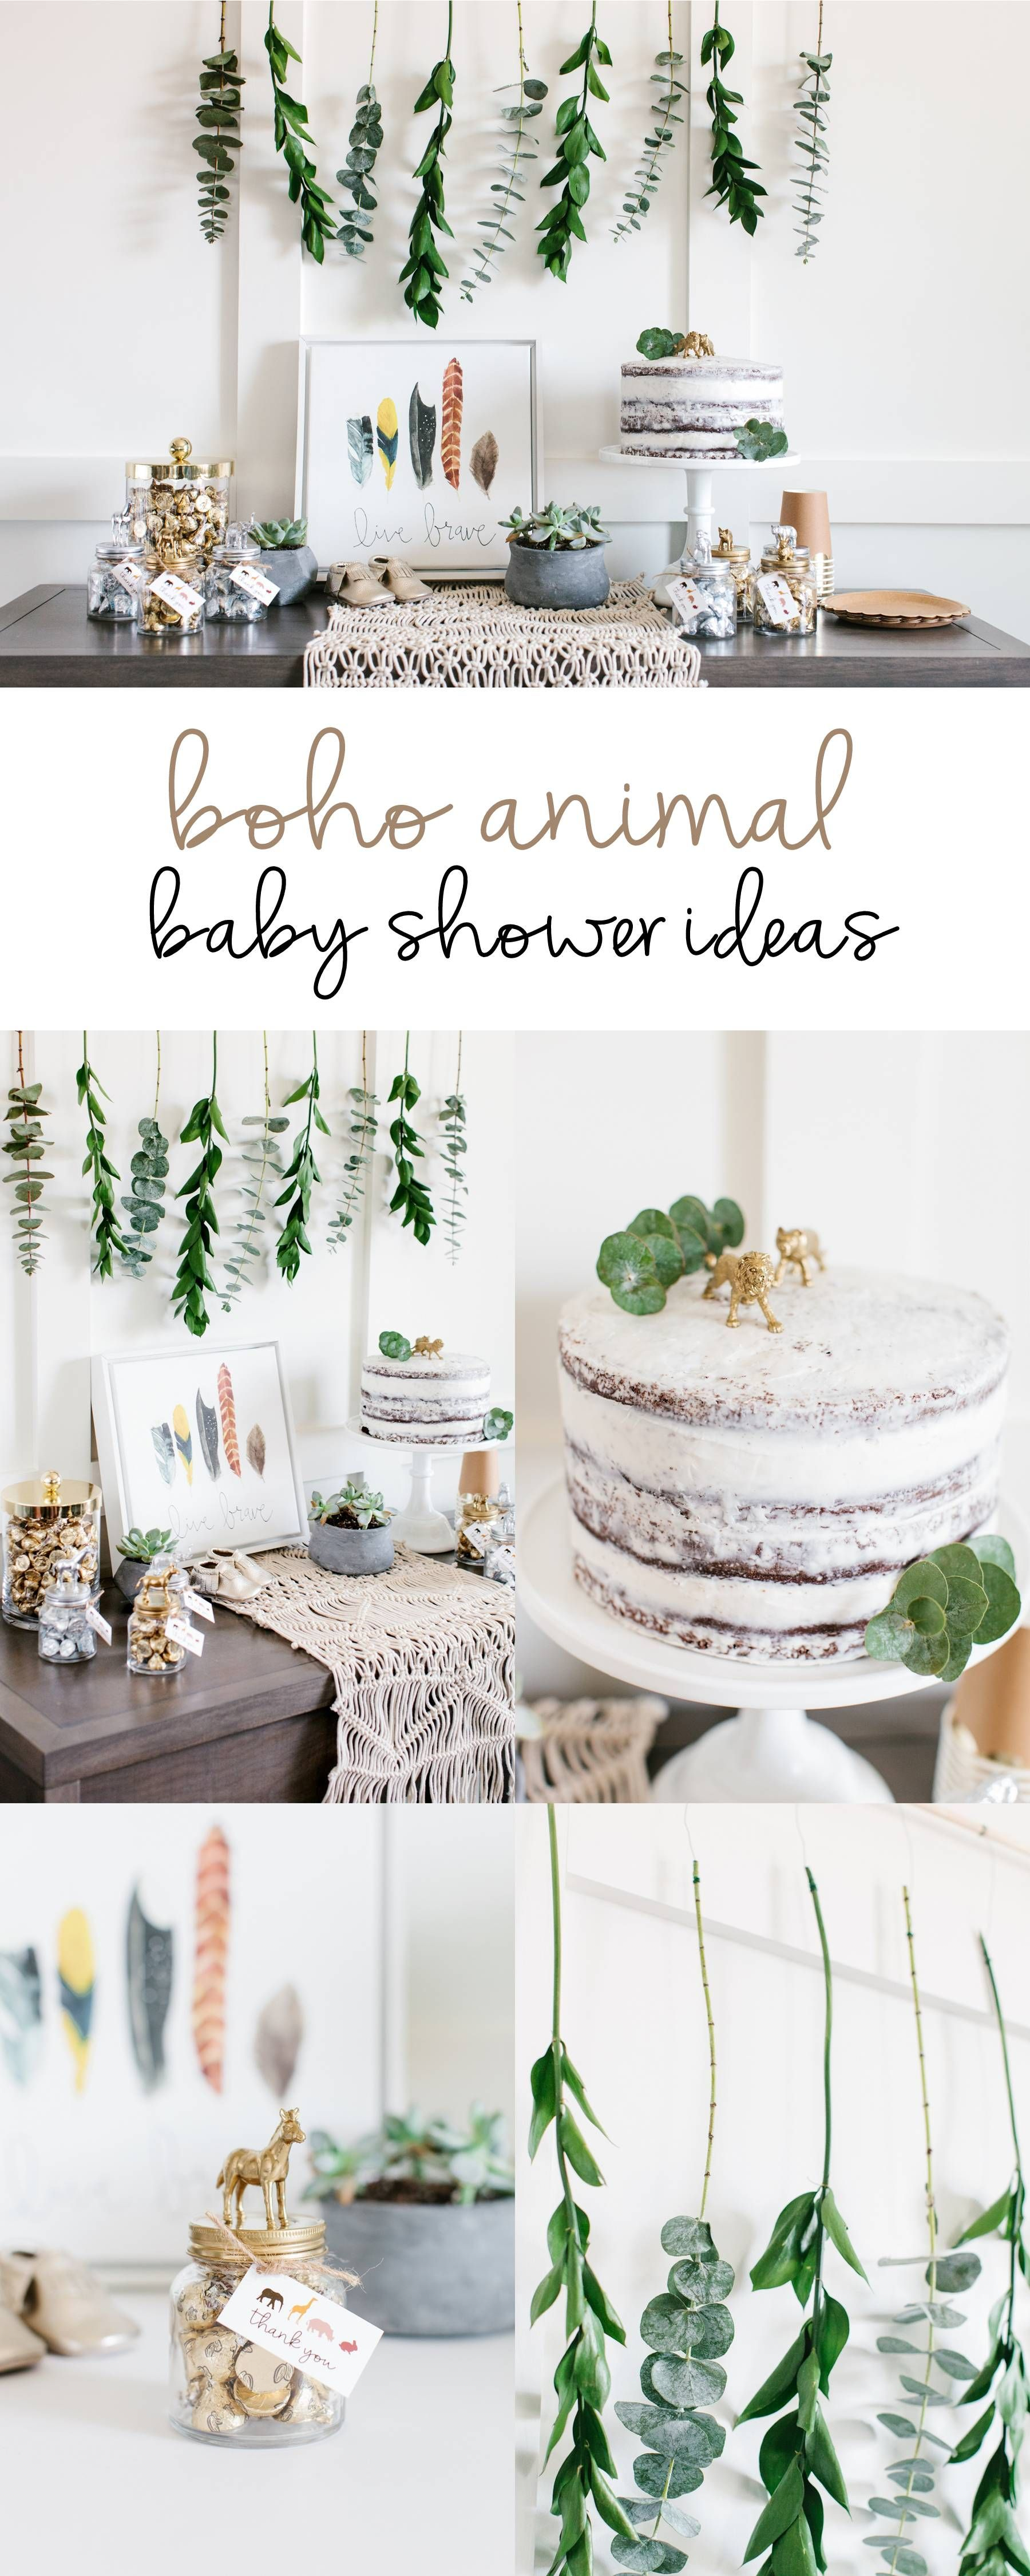 Boho Animal Jar Baby Shower Favors The Tomkat Studio Blog Animal Baby Shower Gender Neutral Baby Shower Boho Baby Shower